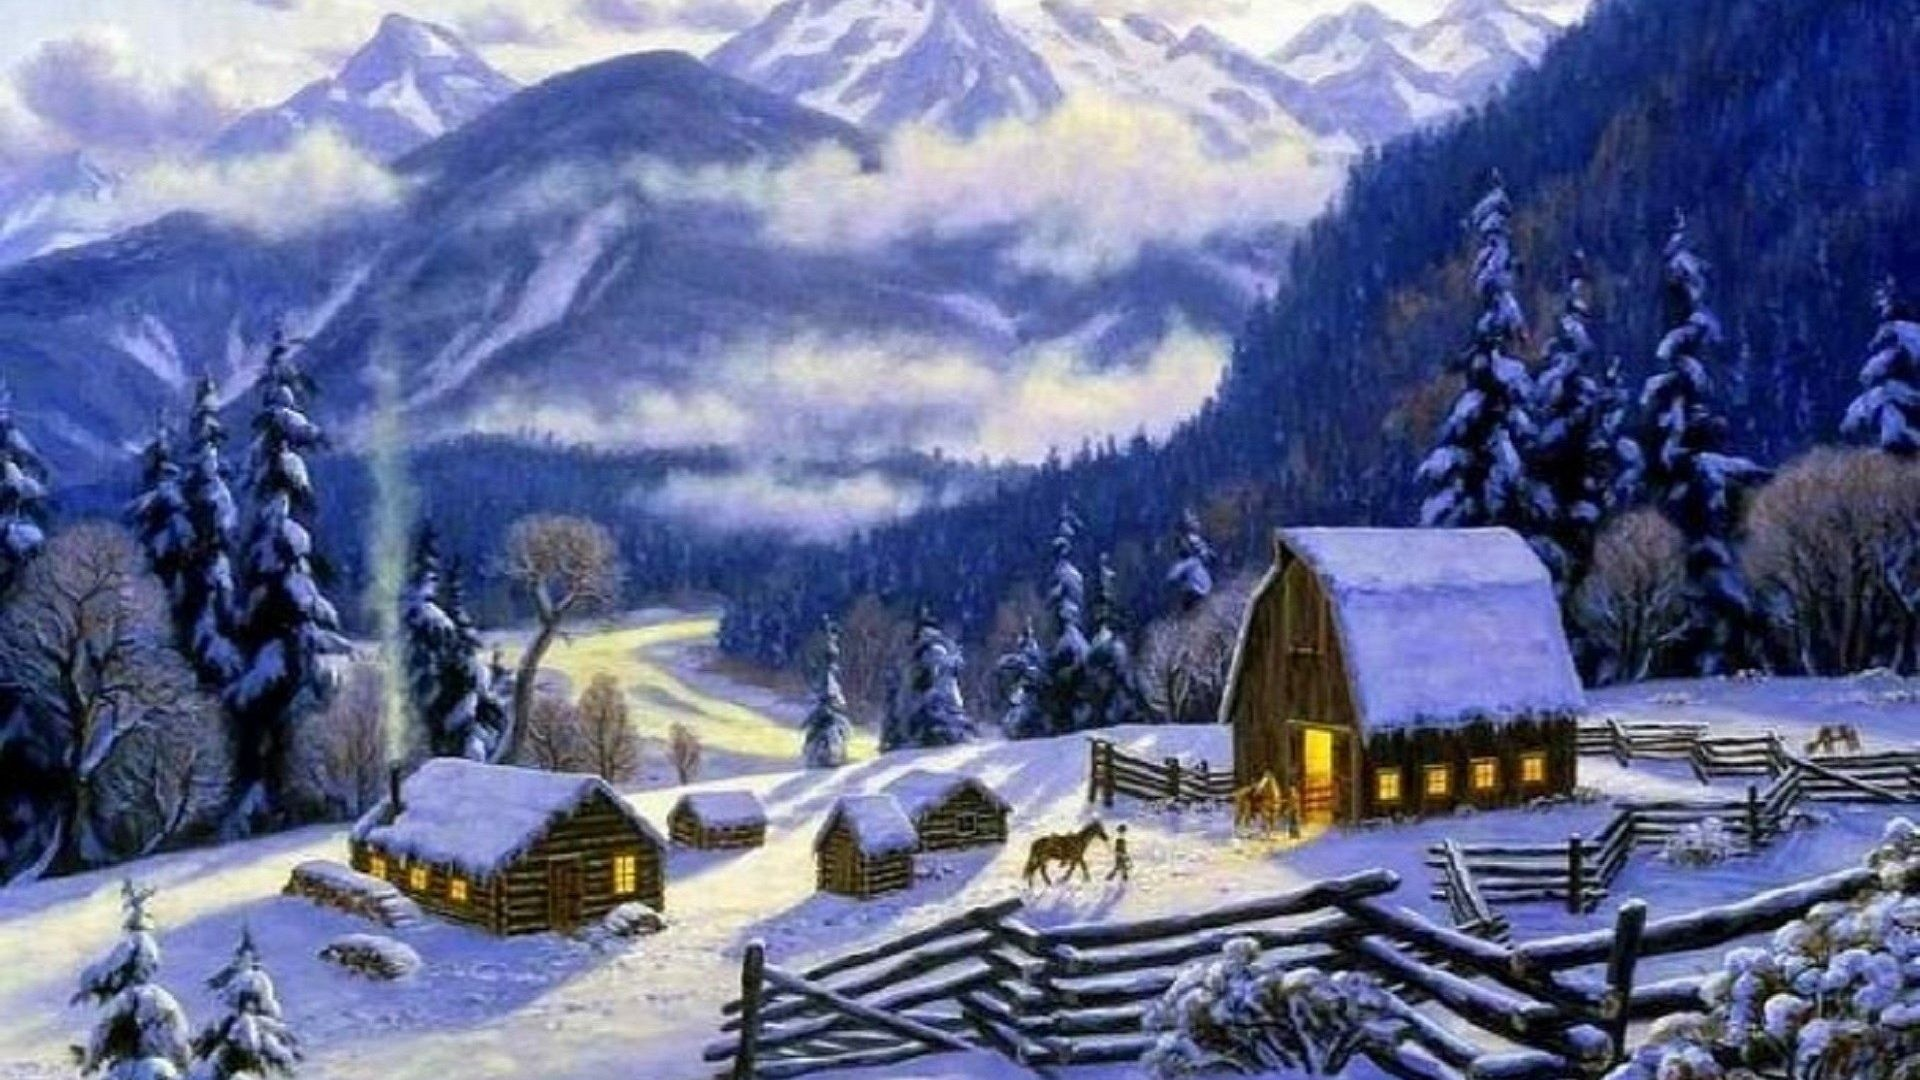 Free Animated Desktop Wallpaper Like Snow Falling On Background Animated Snow Scene Wallpaper 41 Images